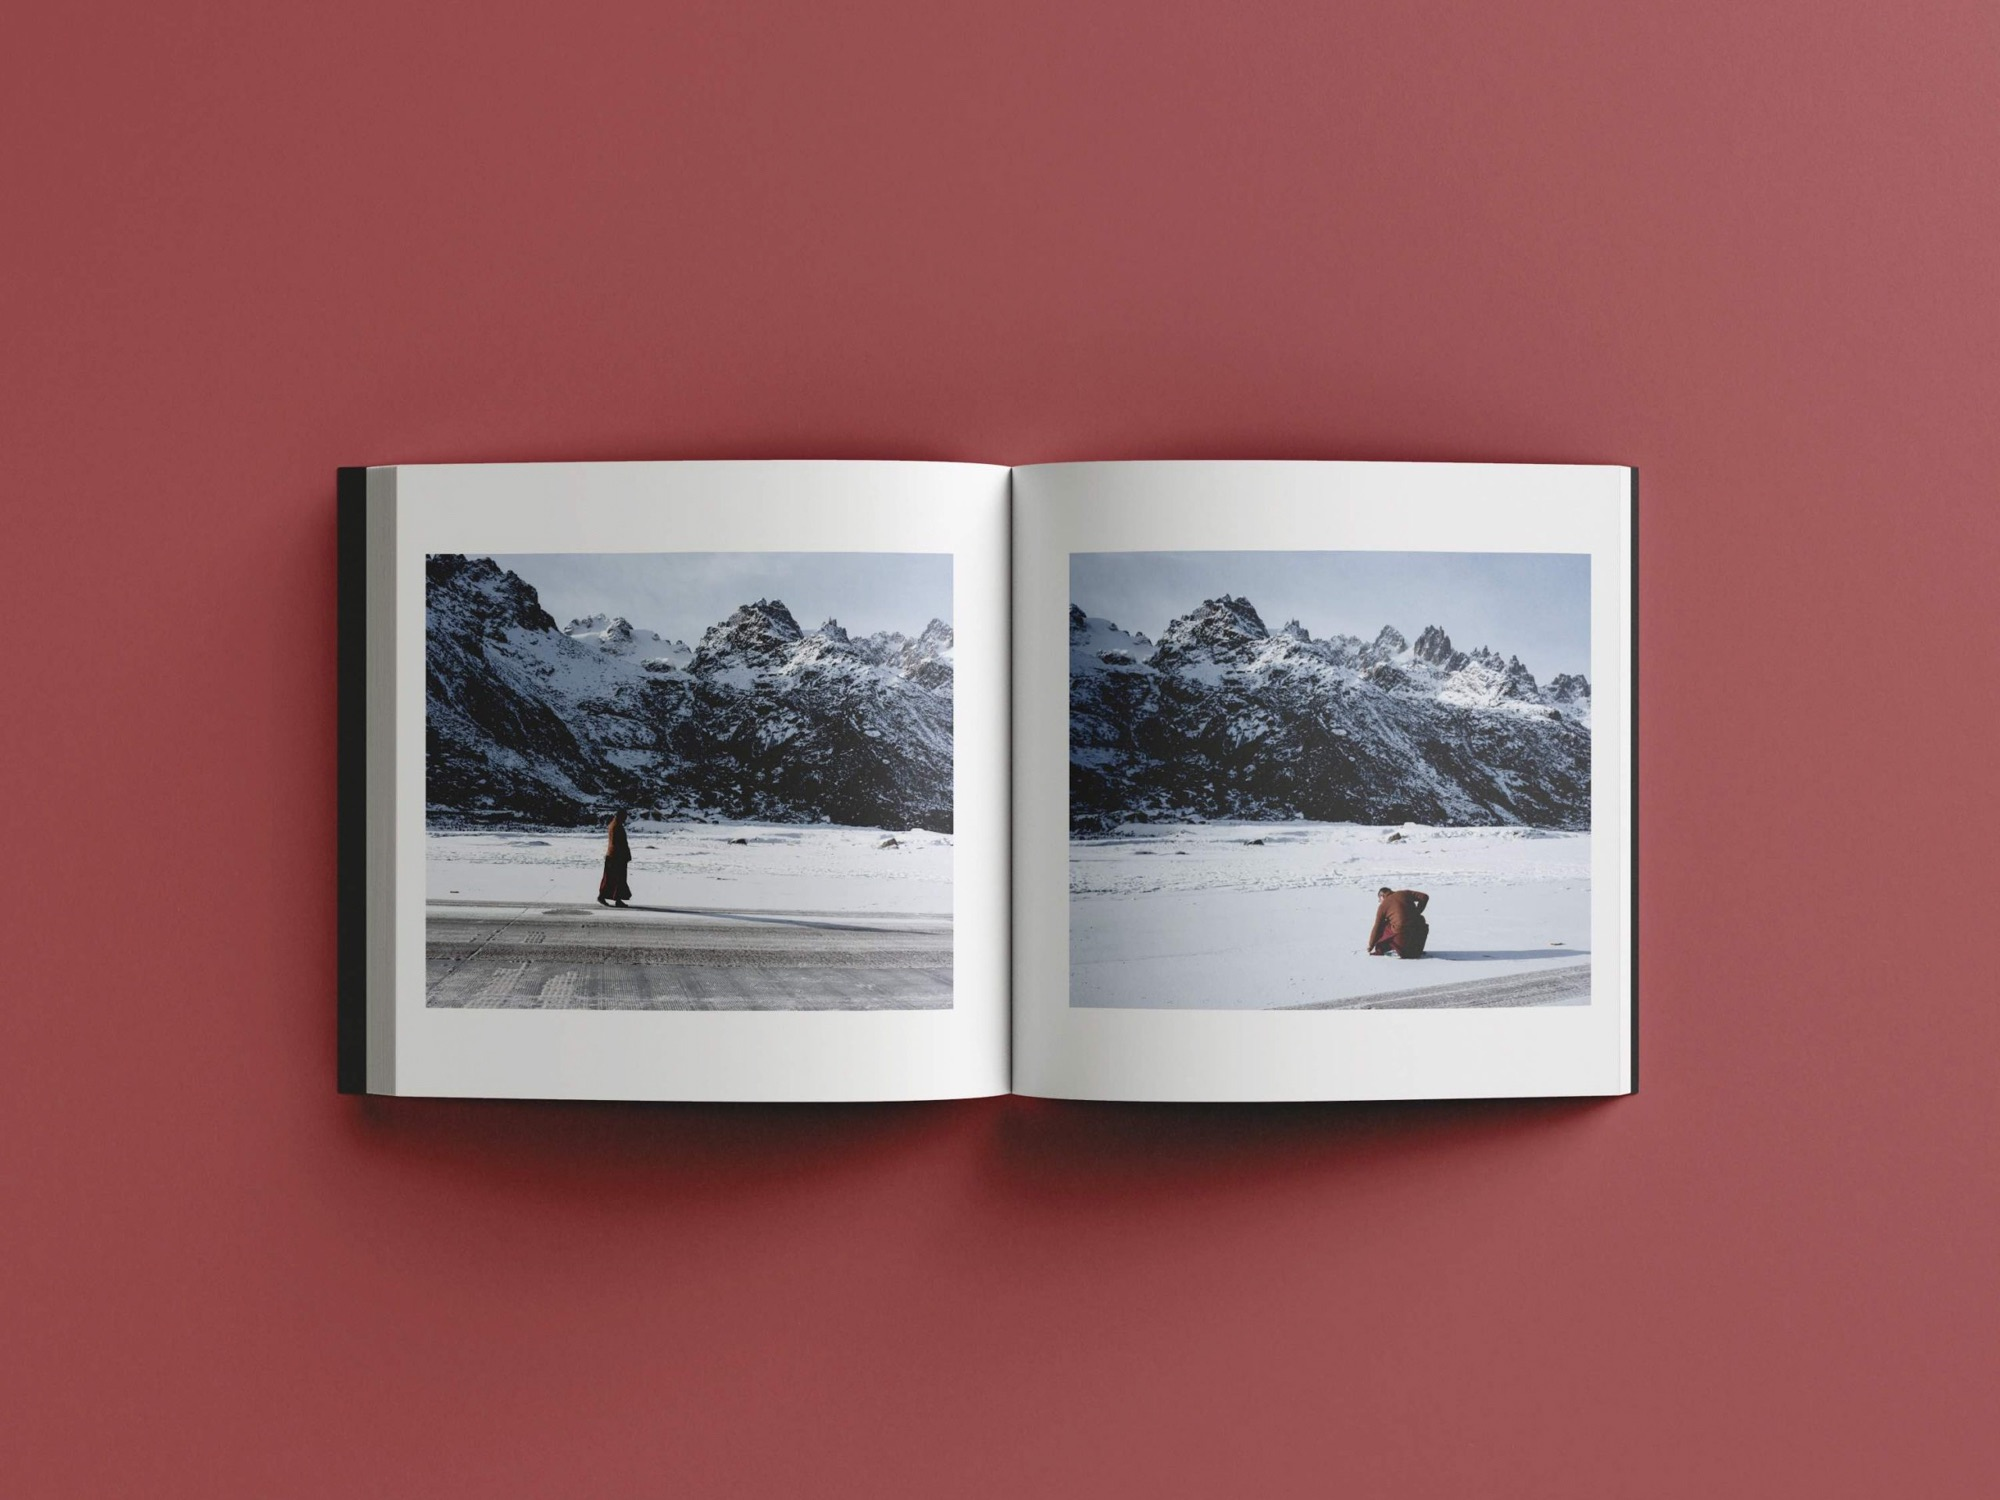 Tibet Photography Book Sichuan Documentary Singapore Coco Creative Studio 1-7